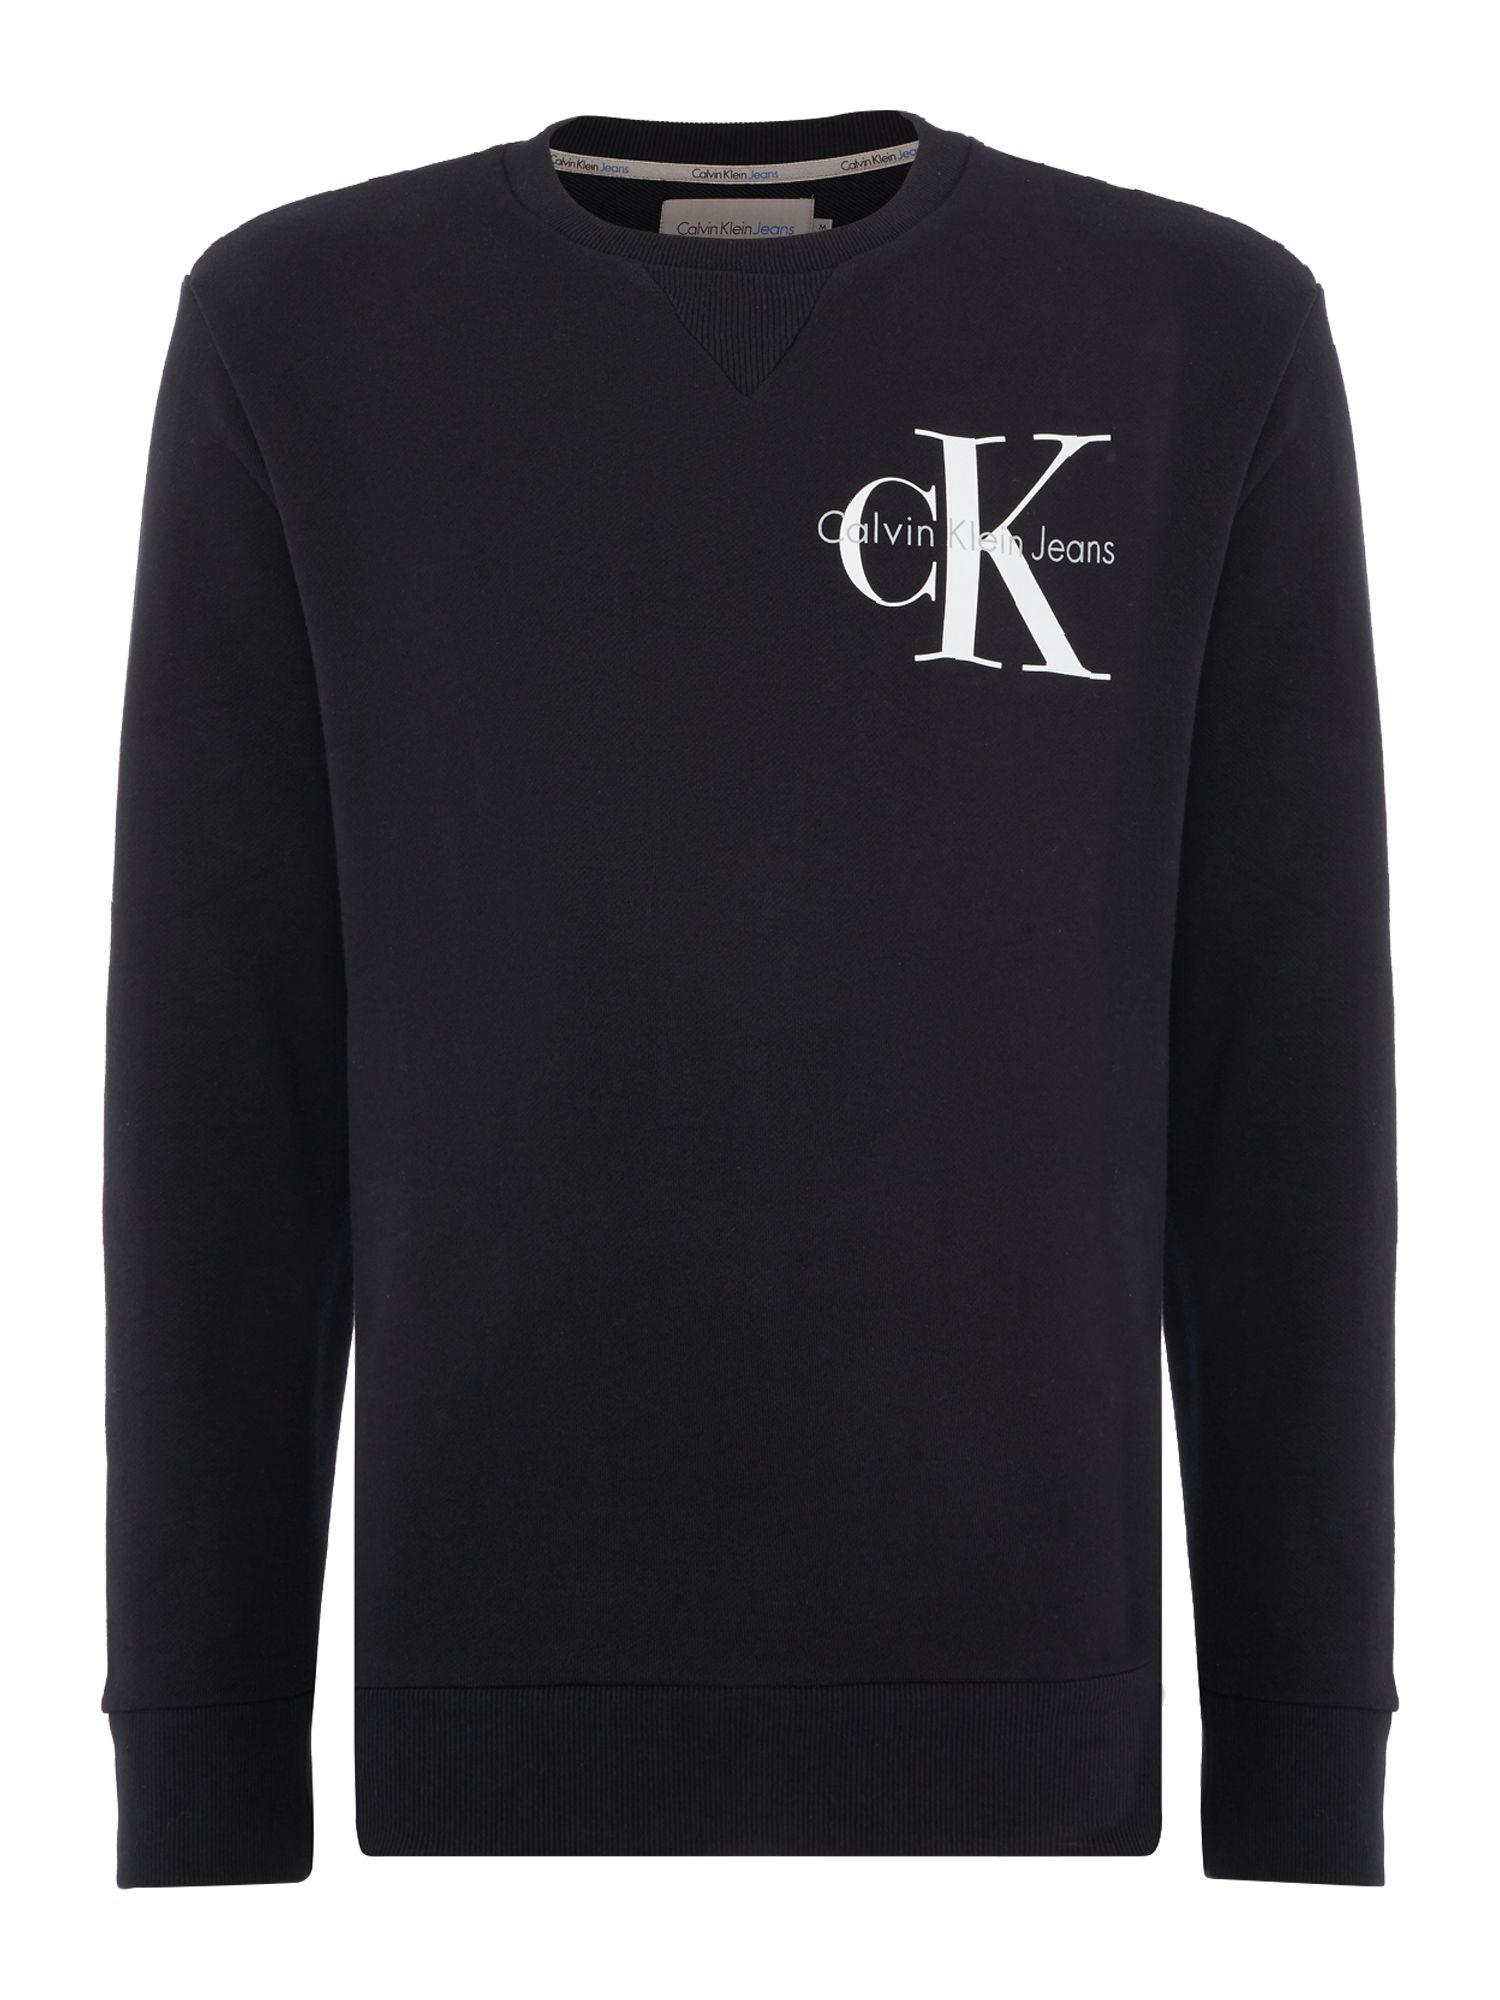 Men's Calvin Klein Haro True Icon Sweatshirt, Black